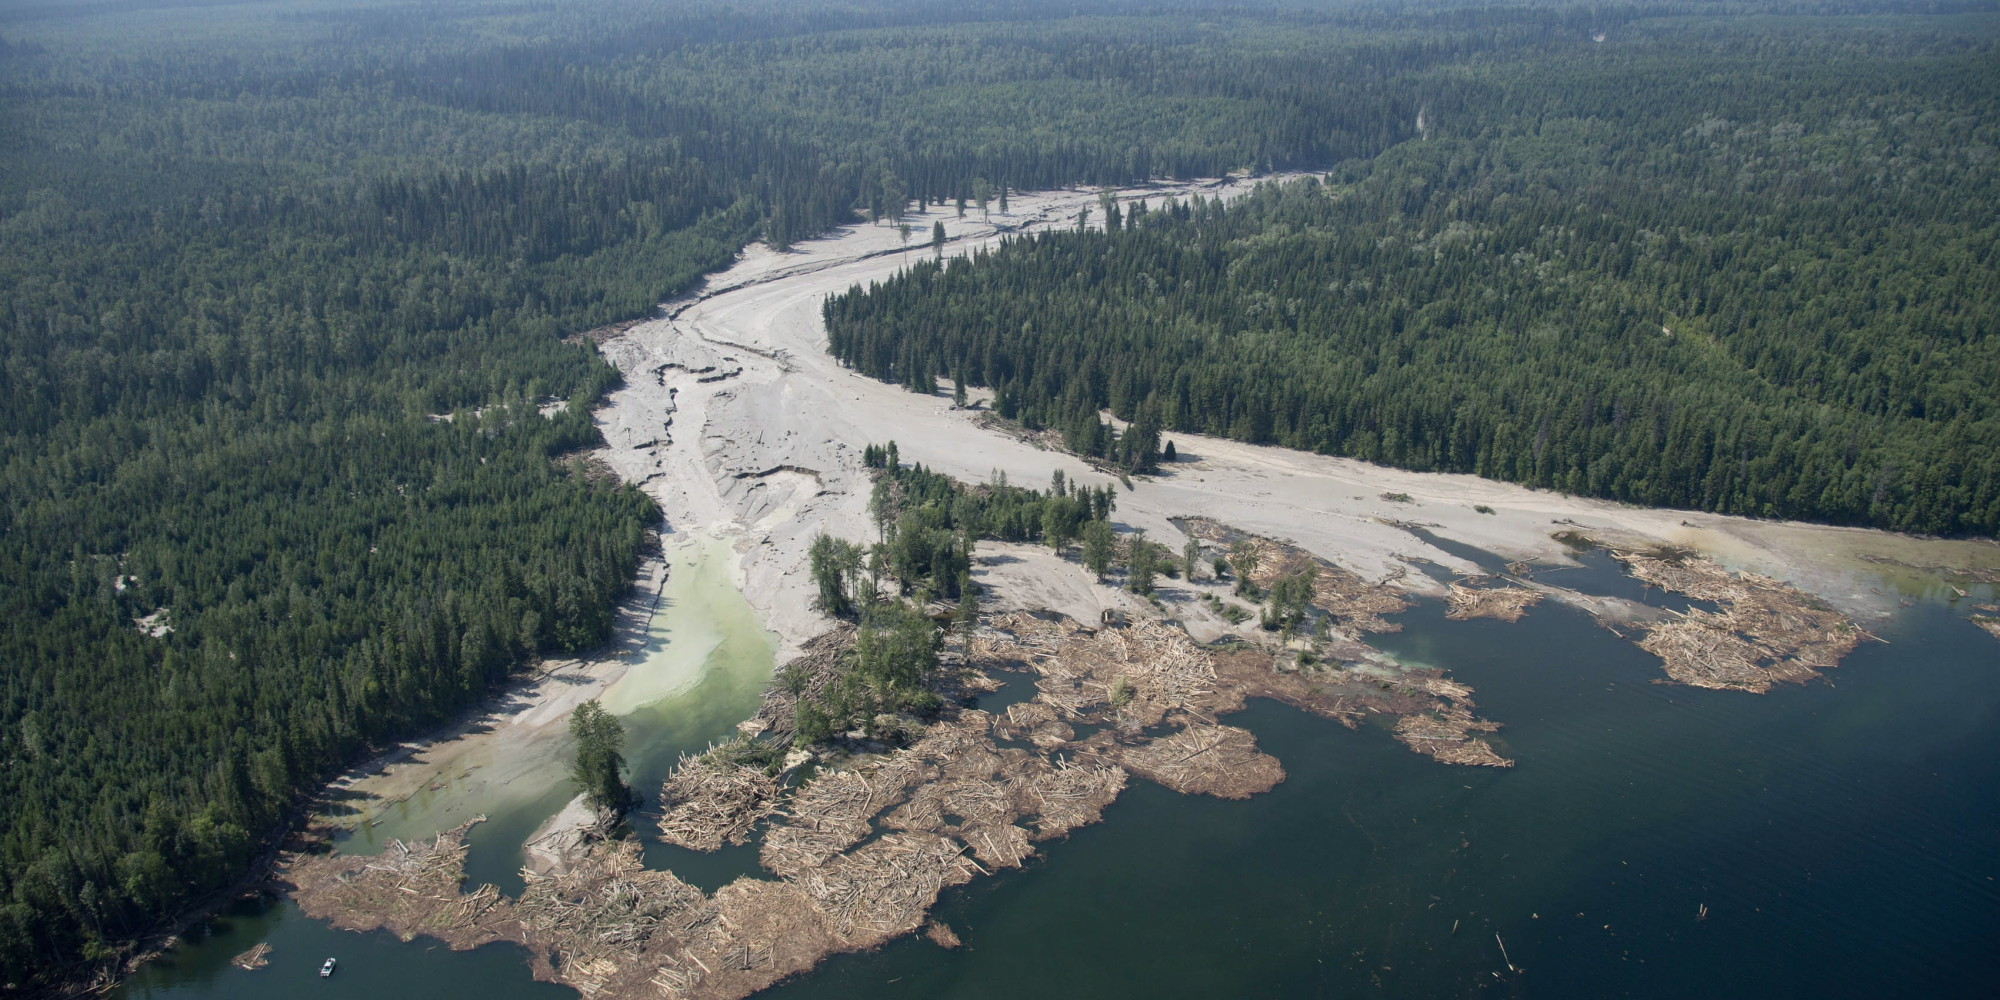 Mount Polley mine tailings breach: Another environmental disaster in BC